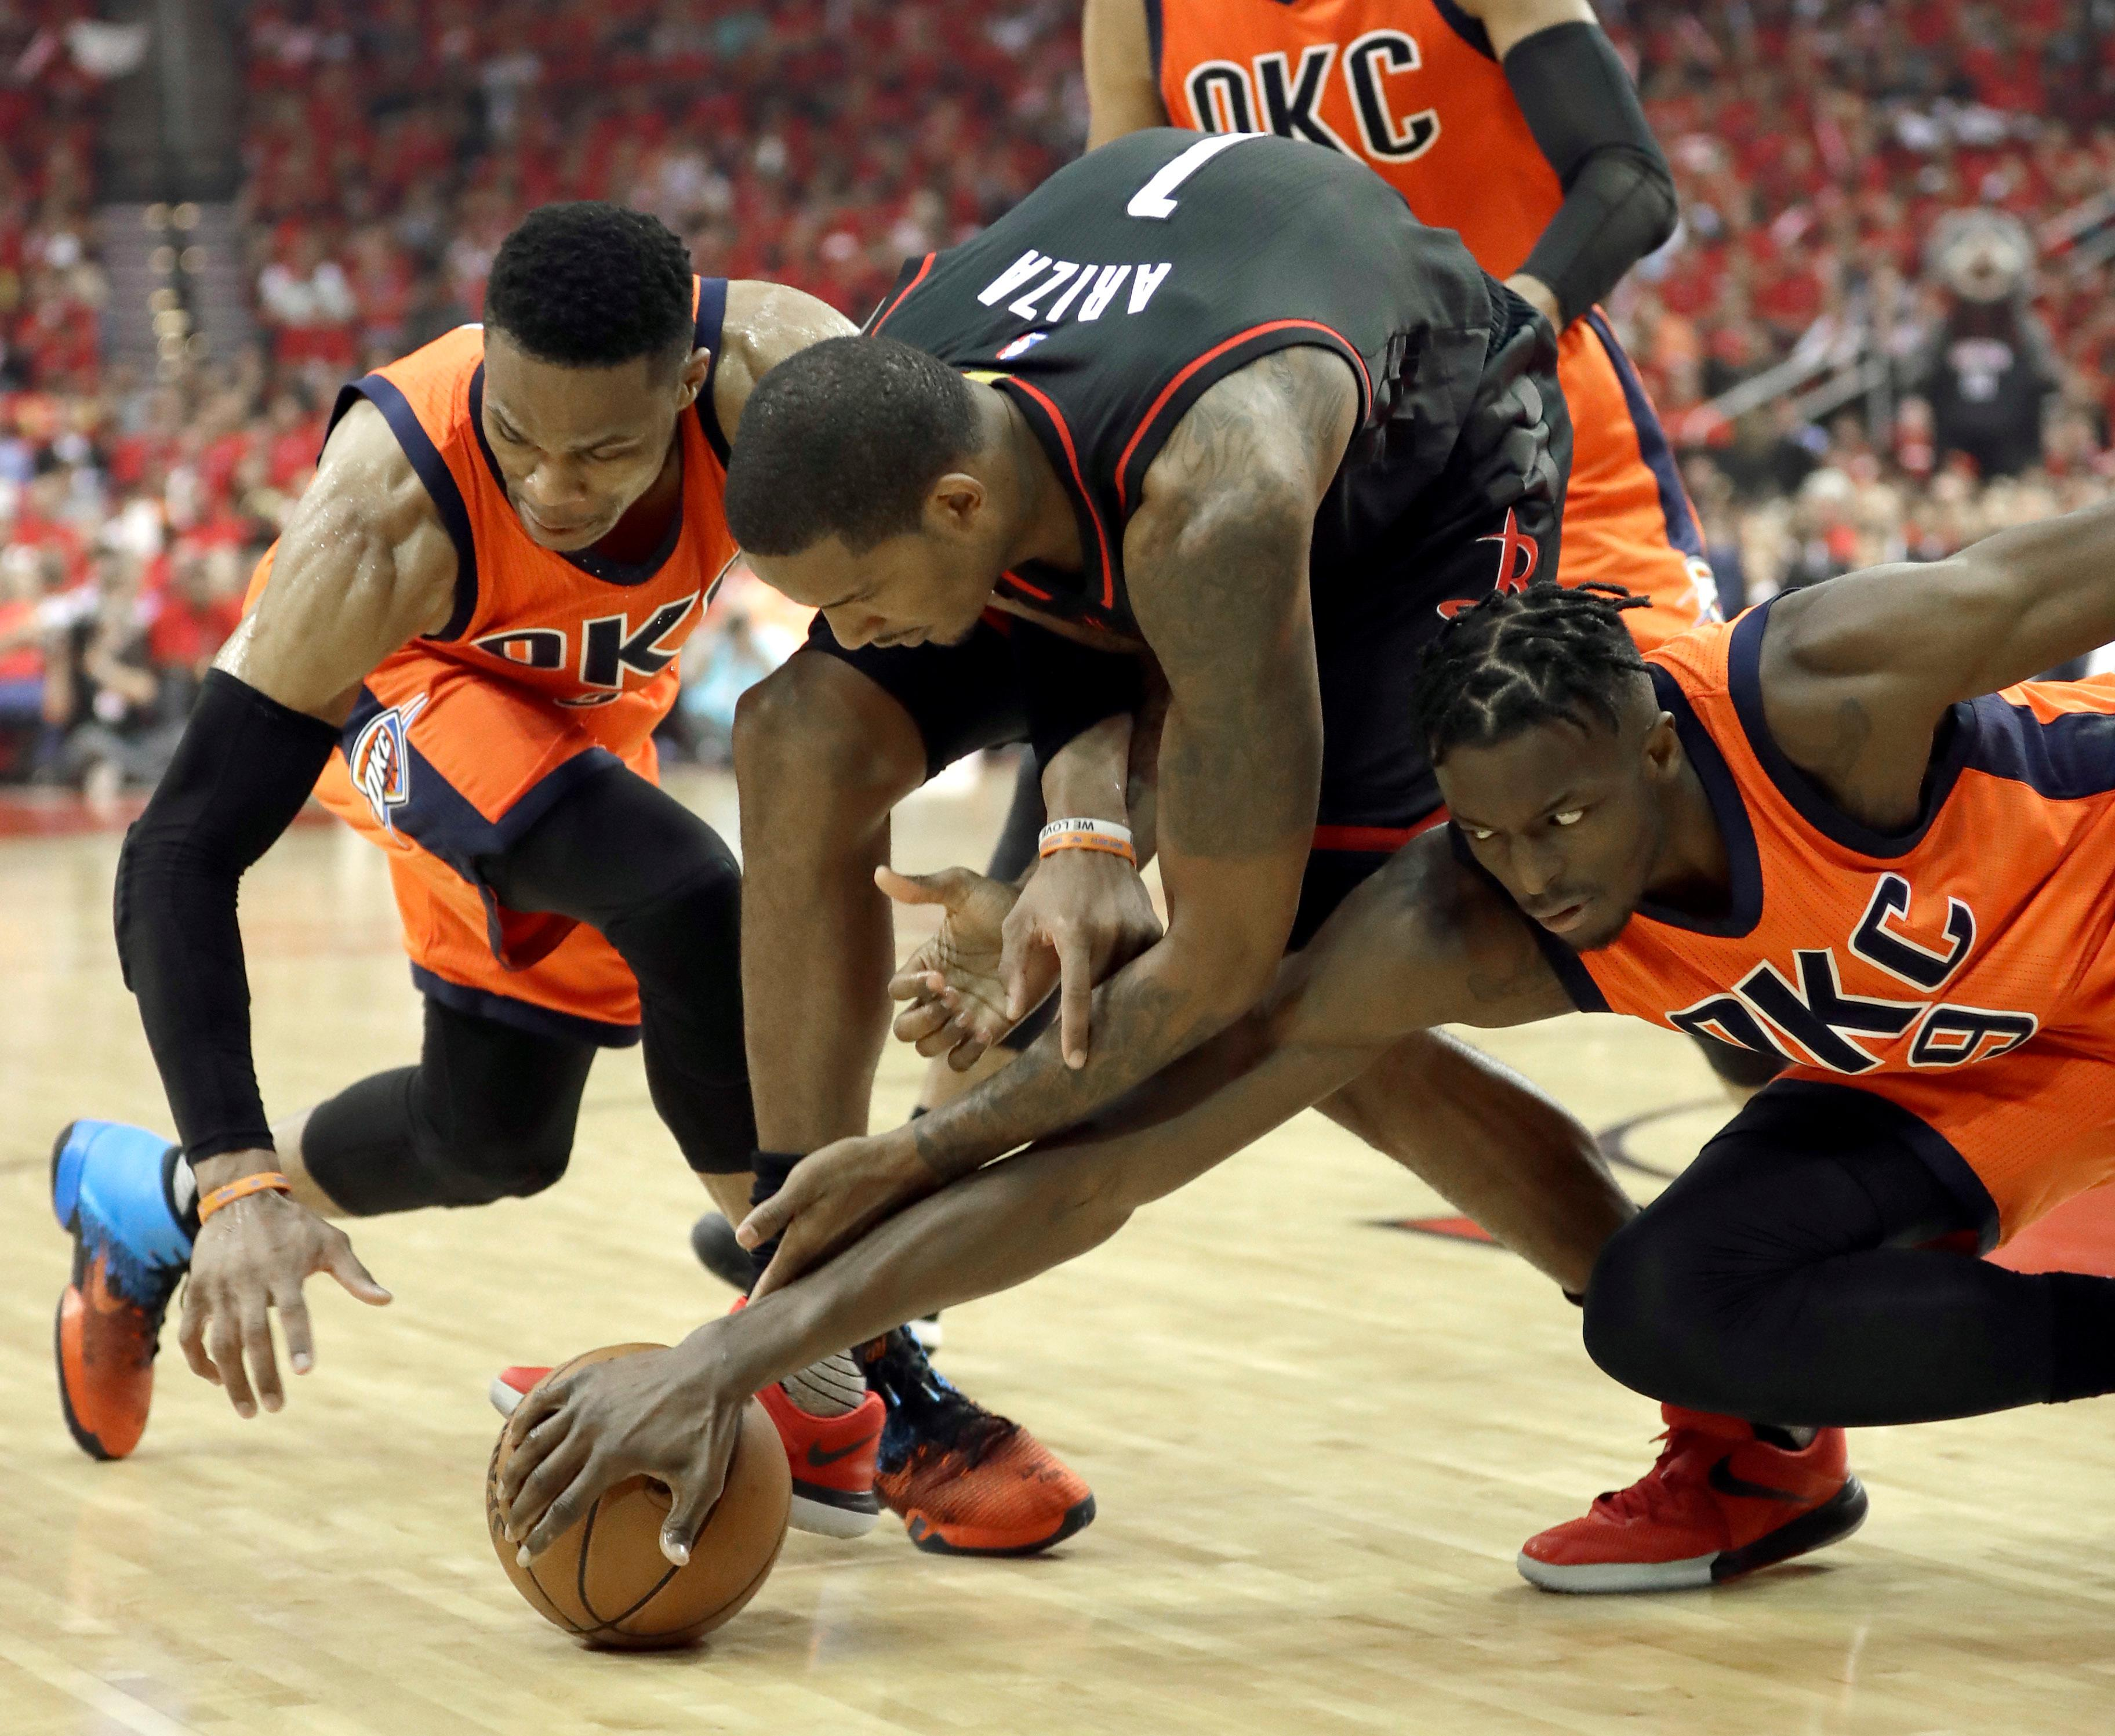 Houston Rockets' Trevor Ariza (1) battles Oklahoma City Thunder's Russell Westbrook, left, and Jerami Grant (9) for a loose ball during the second half in Game 1 of an NBA basketball first-round playoff series, Sunday, April 16, 2017, in Houston. (AP Photo/David J. Phillip)